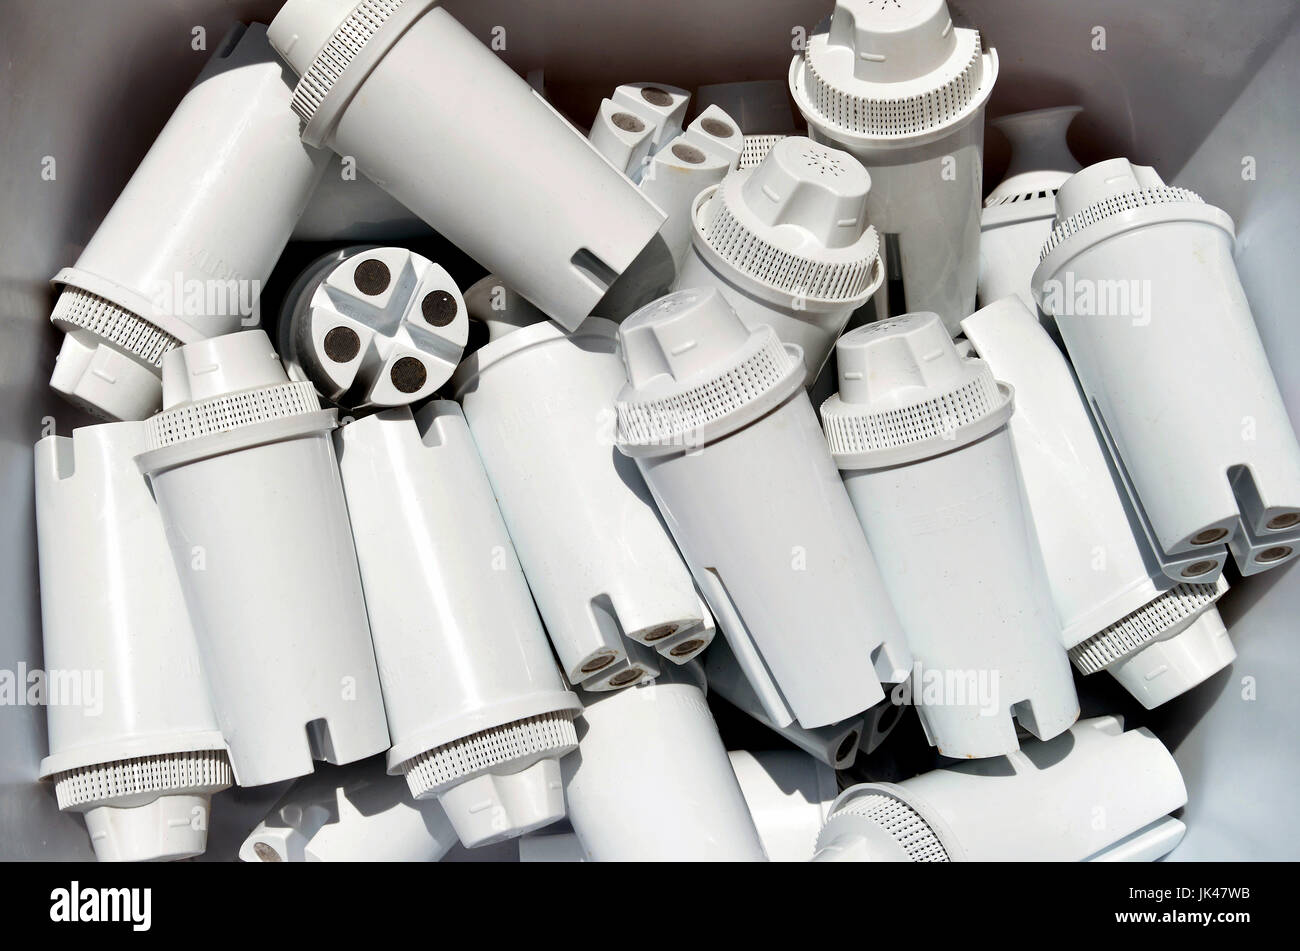 Depleted Britta water filters used in pitchers to remove or reduce zinc, copper, cadmium, chlorine, mercury and - Stock Image